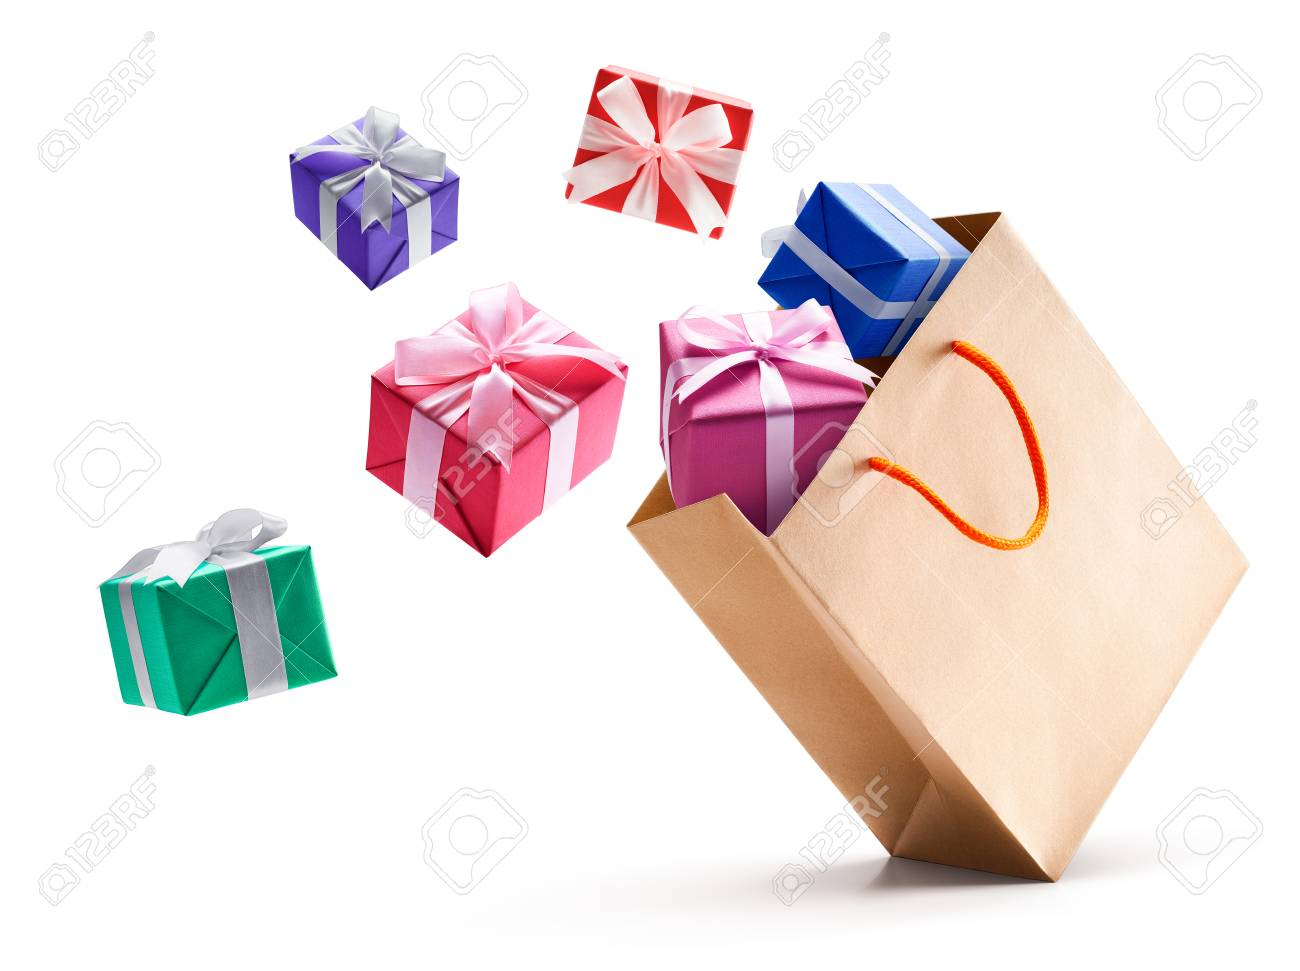 Gift boxes pop out from paper bag isolated on white background - 88795333